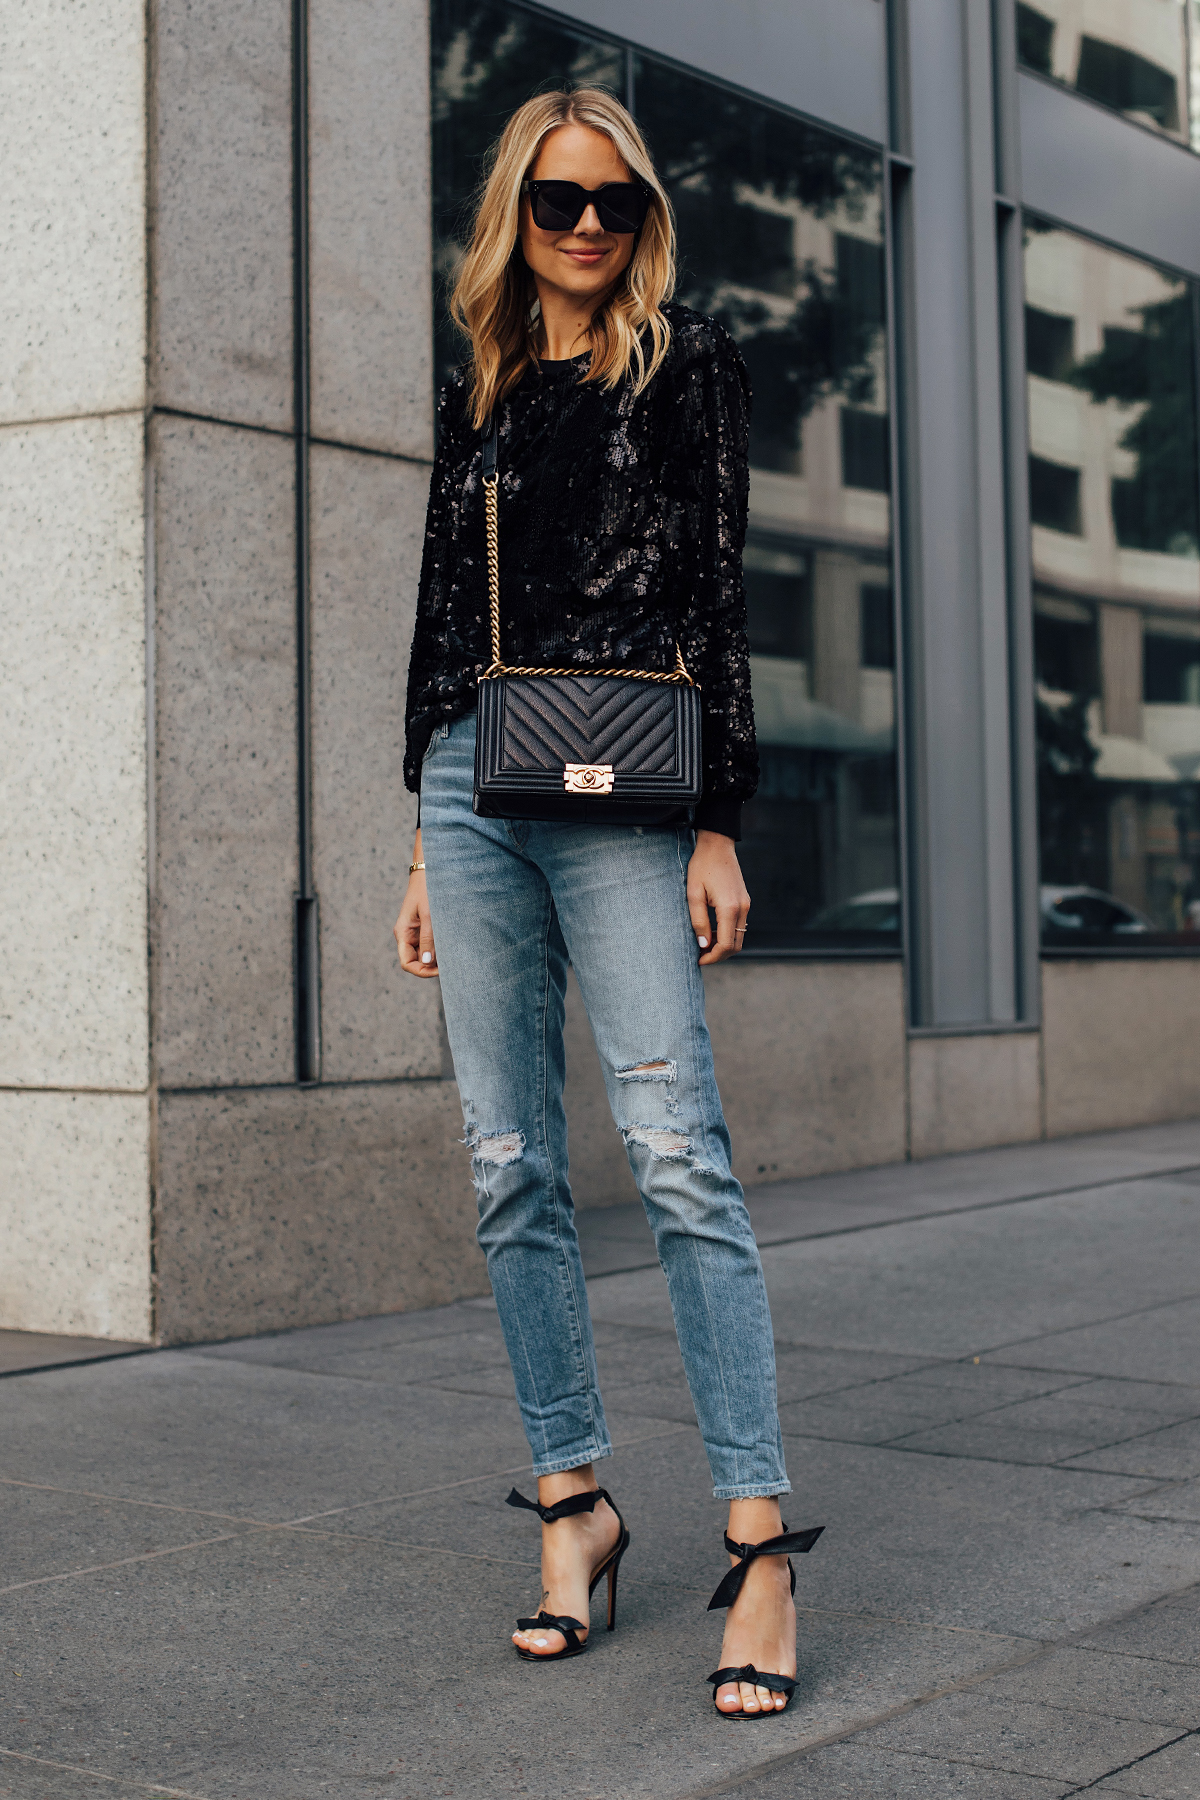 4dc608c4c6a3 ... wear this NYE! Blonde Woman Wearing Black Sequin Top Ripped Skinny Jeans  Chanel Black Boy Bag Black Ankle Tie